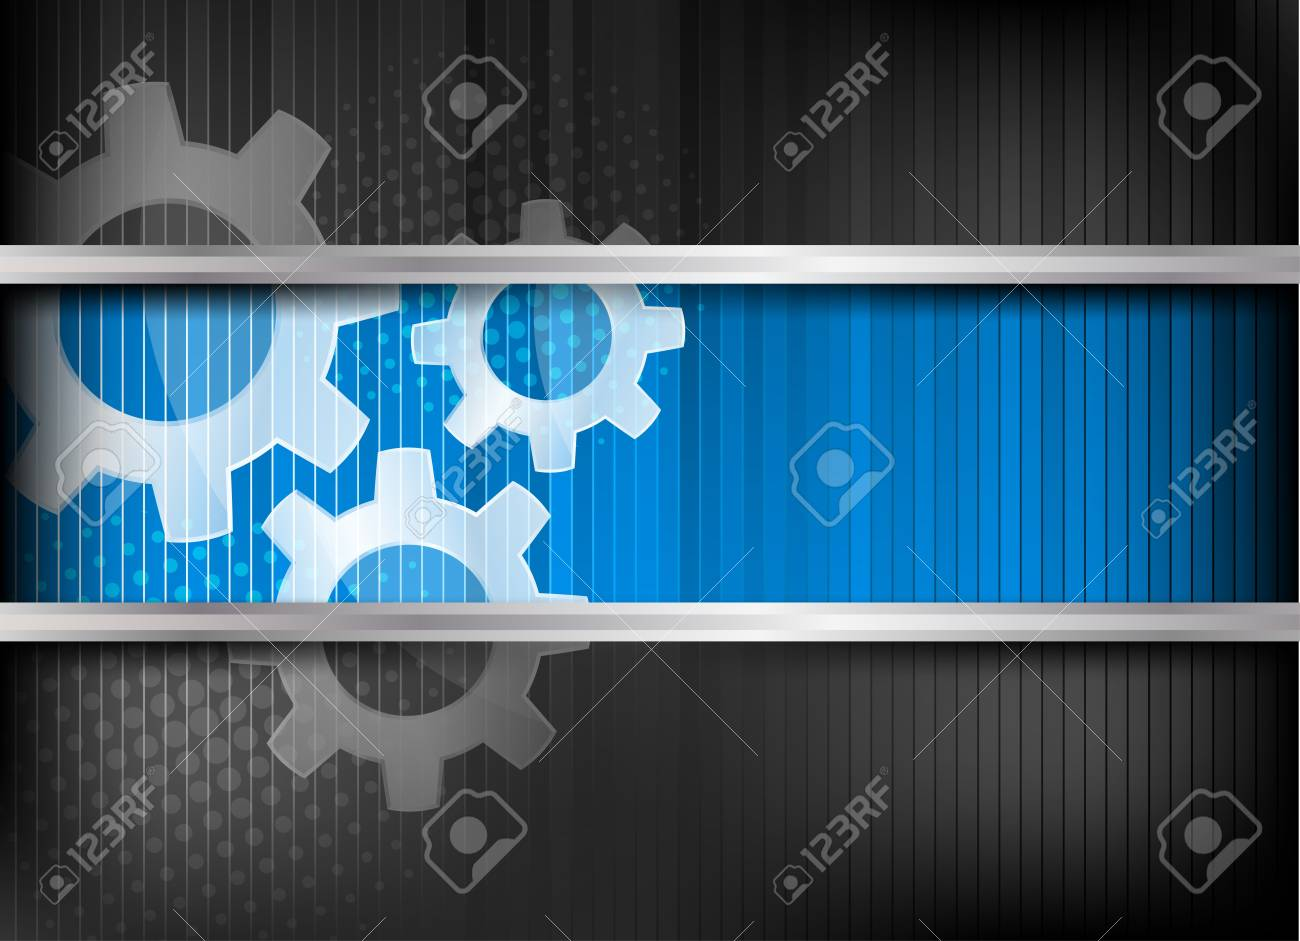 Background with three gears and blue line Stock Photo - 12726483